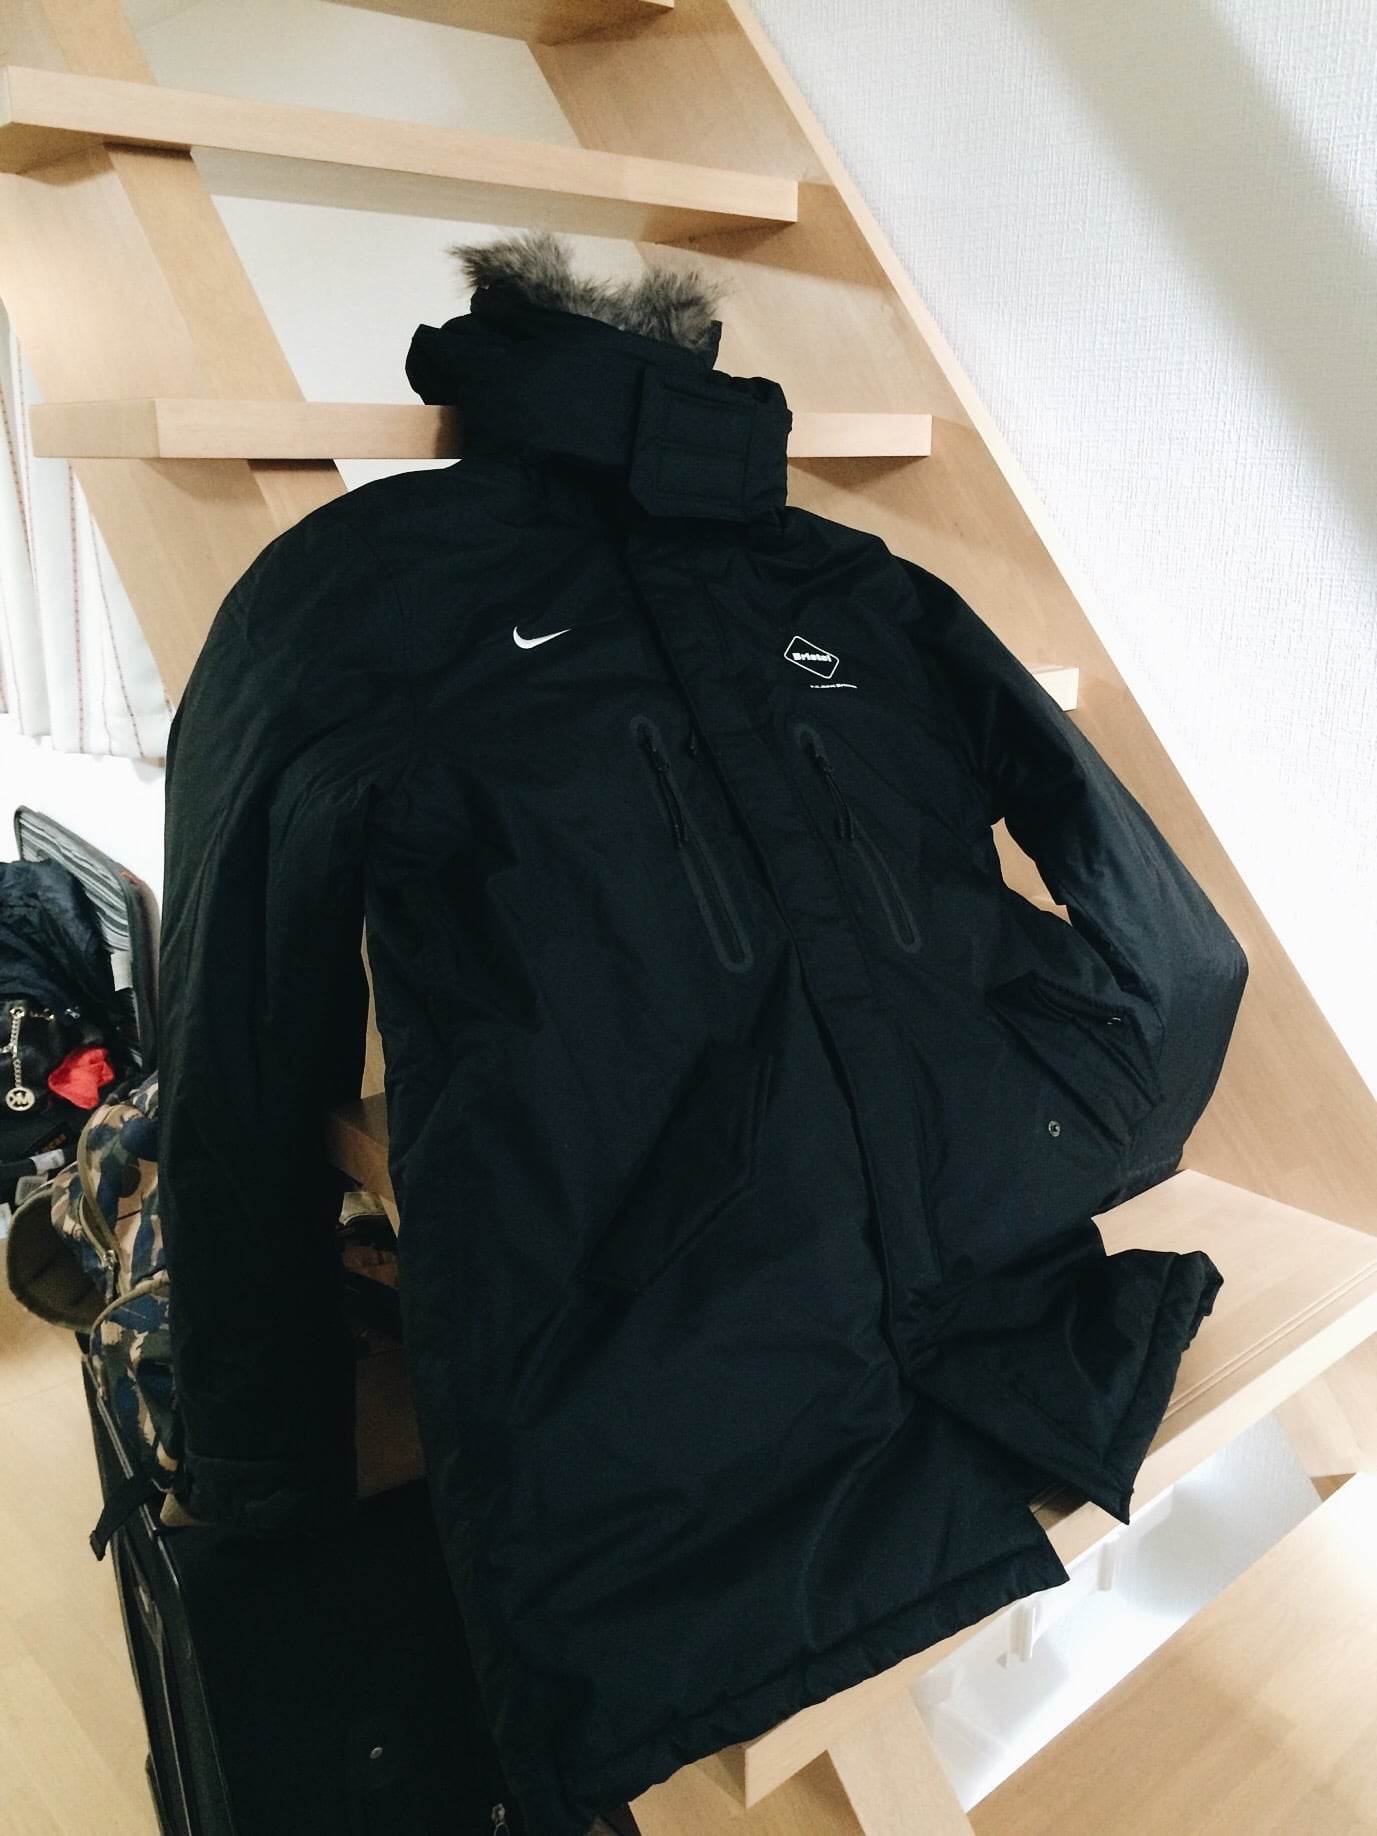 I was having second thoughts about buying it because of the price but I do need it for the snow tomorrow. This jacket a medium, I wear XL but some how this fit me. It's really warm!